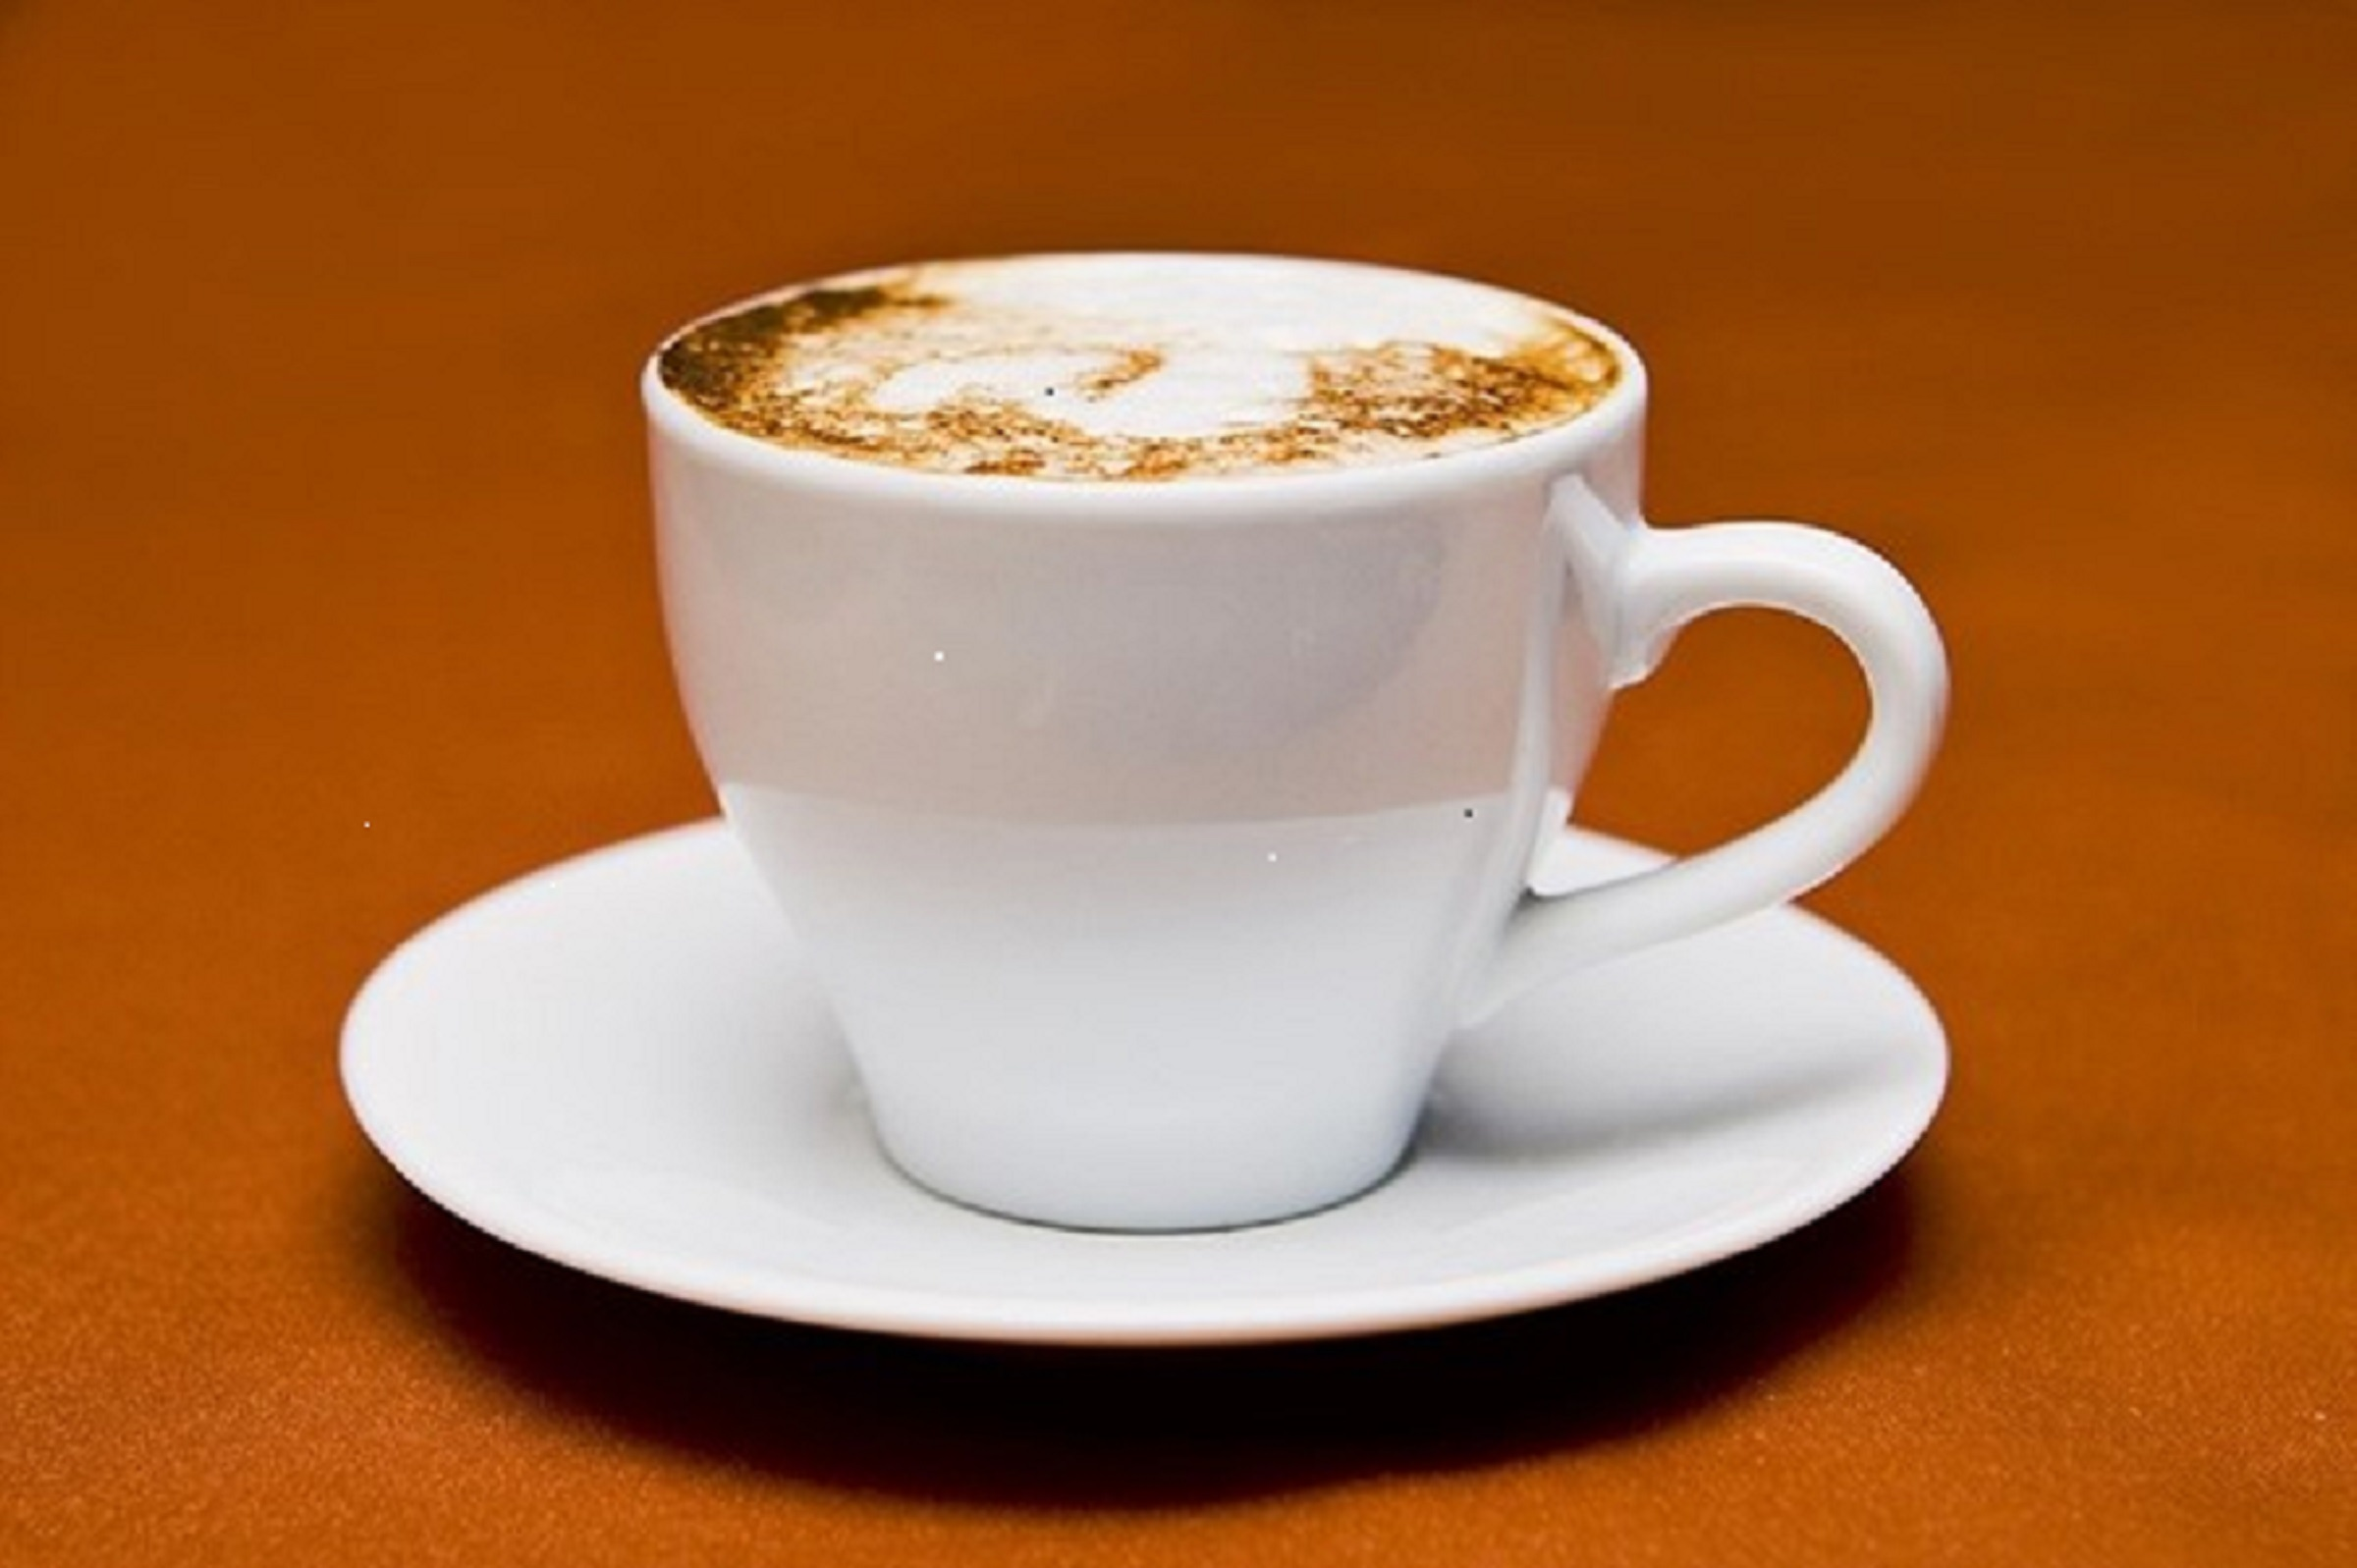 White cup of coffee on a tan background